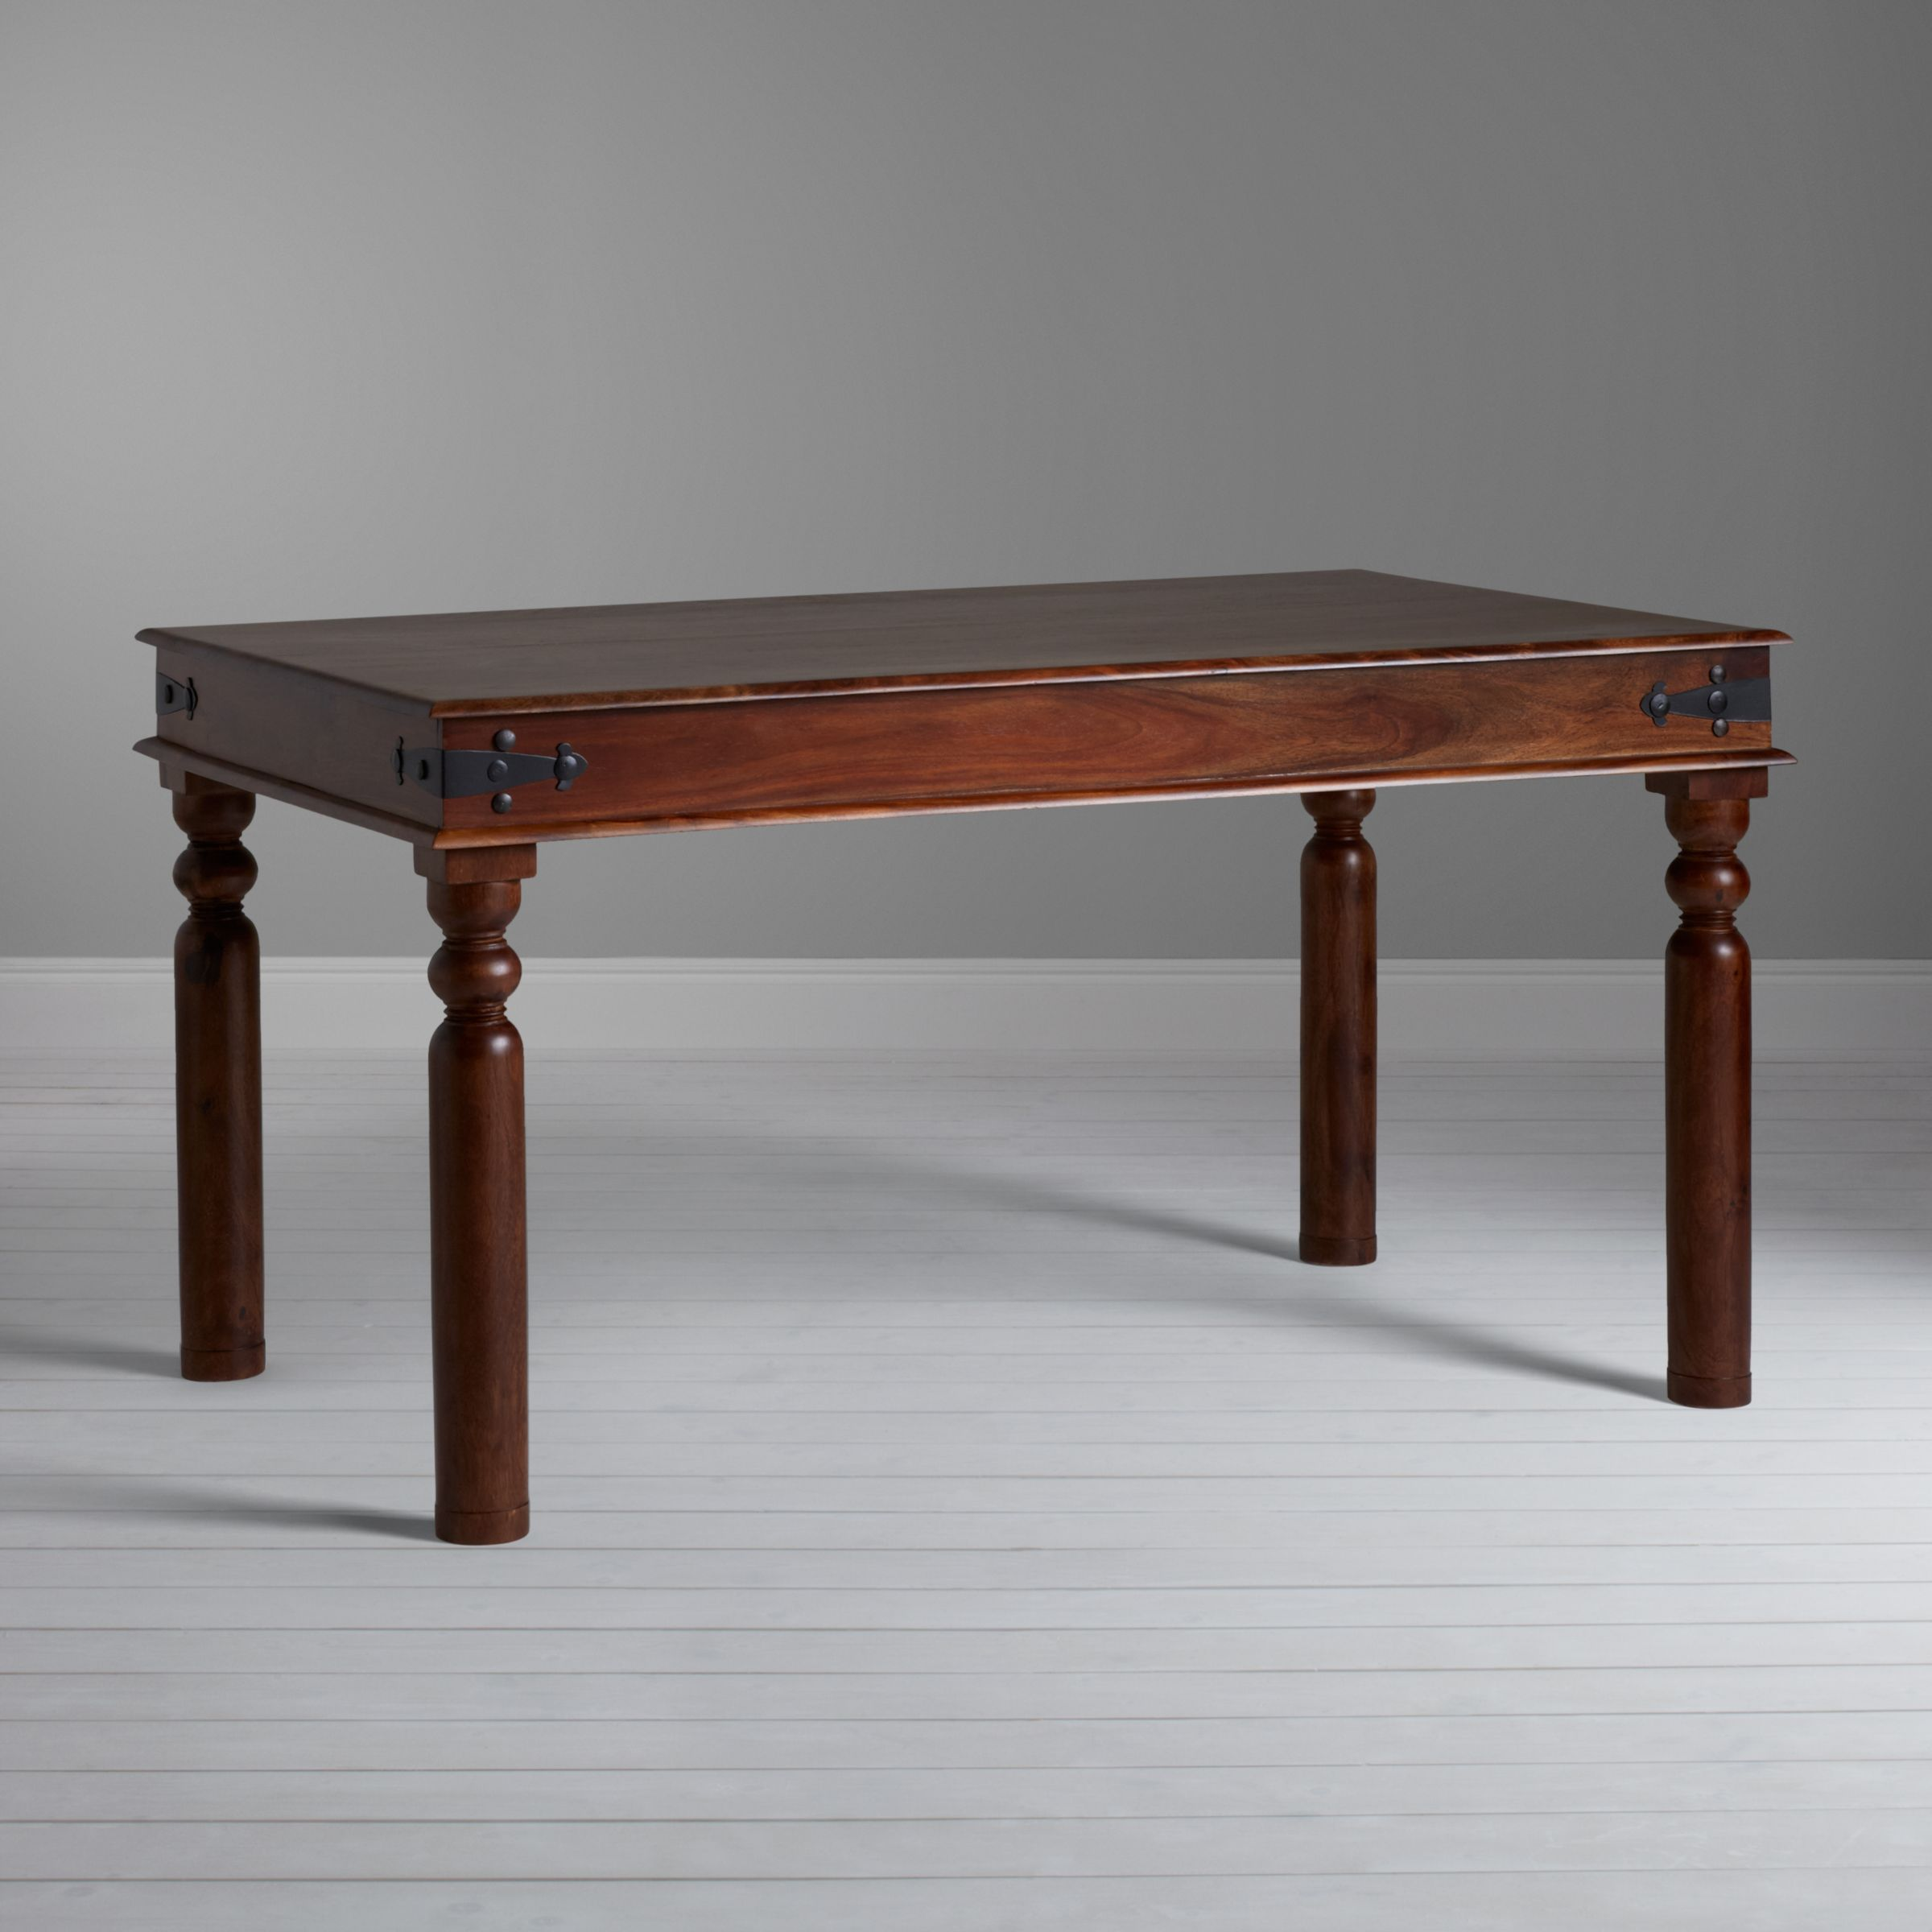 Indian wood dining table Shop for cheap Tables and Save  : 233119231zoom from www.pricechaser.co.uk size 1600 x 1600 jpeg 211kB